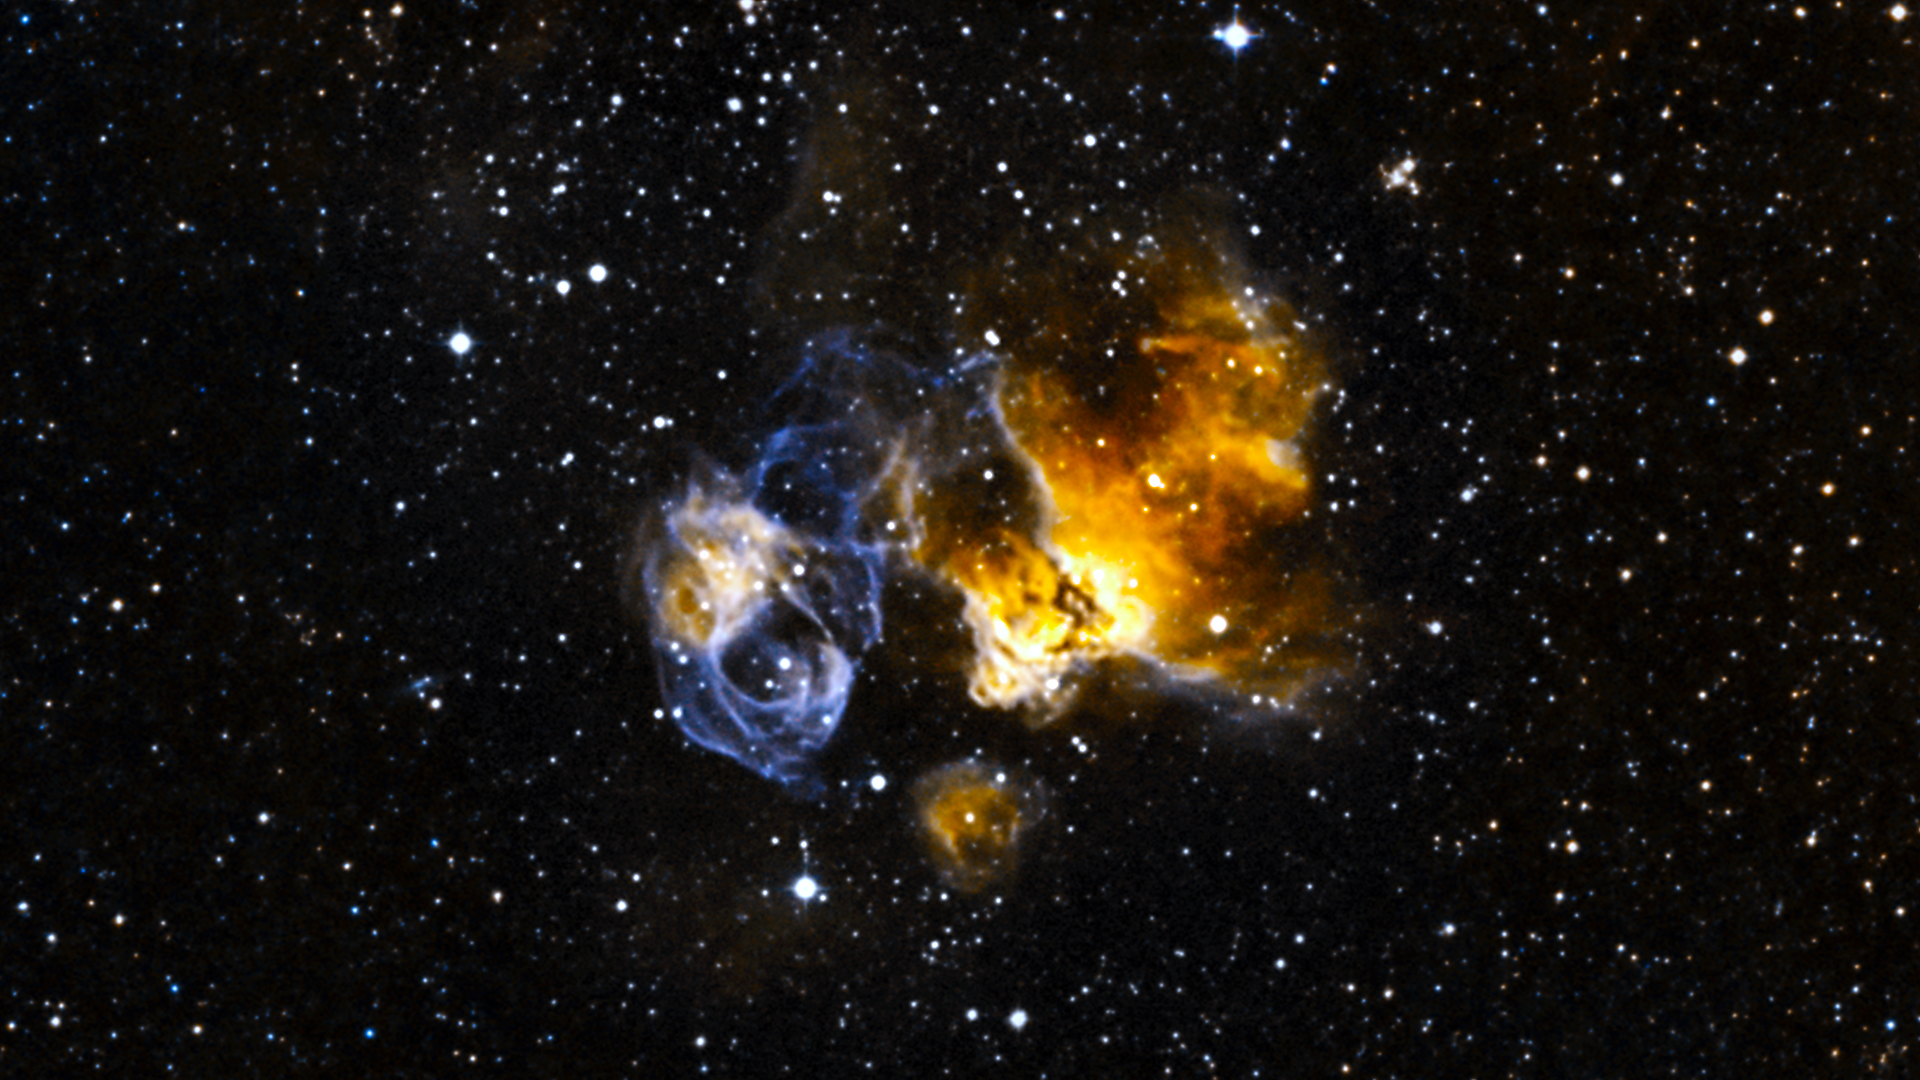 hardy star survives supernova blast nasa image and video library